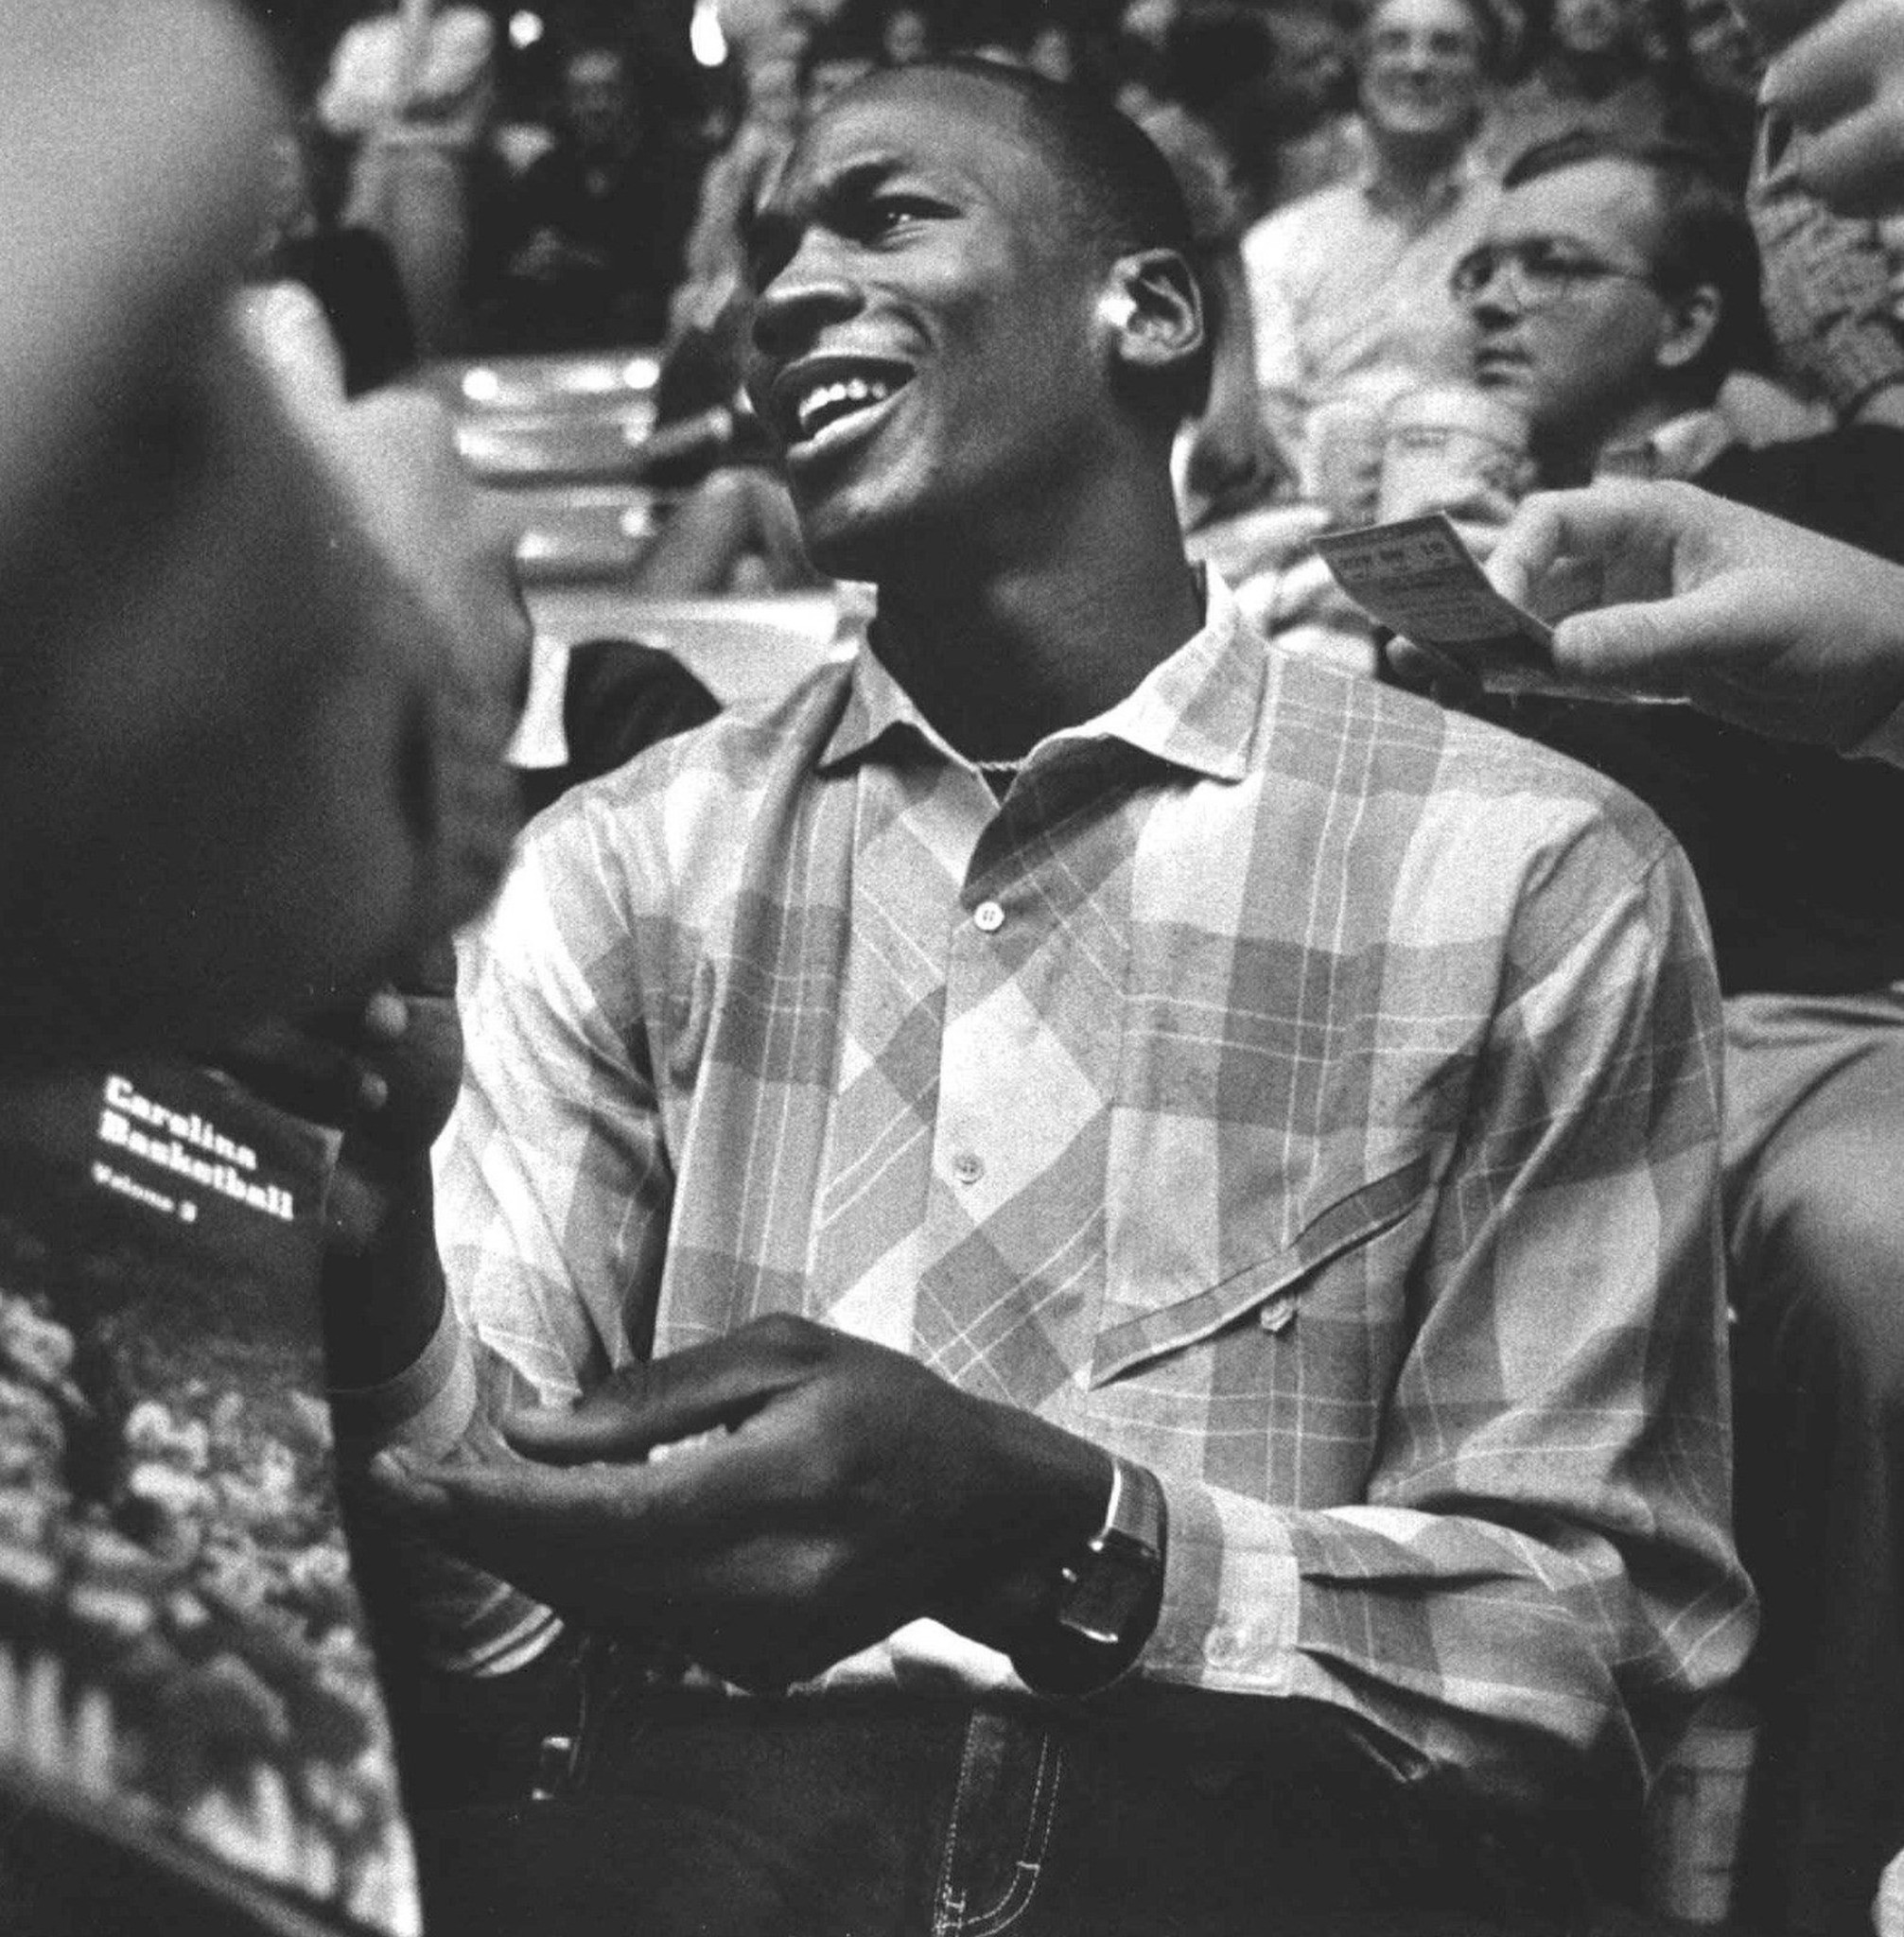 The Pose. The Flu Game. The Shrug. Michael Jordan's top 56 moments of his career in honor of his 56th birthday.